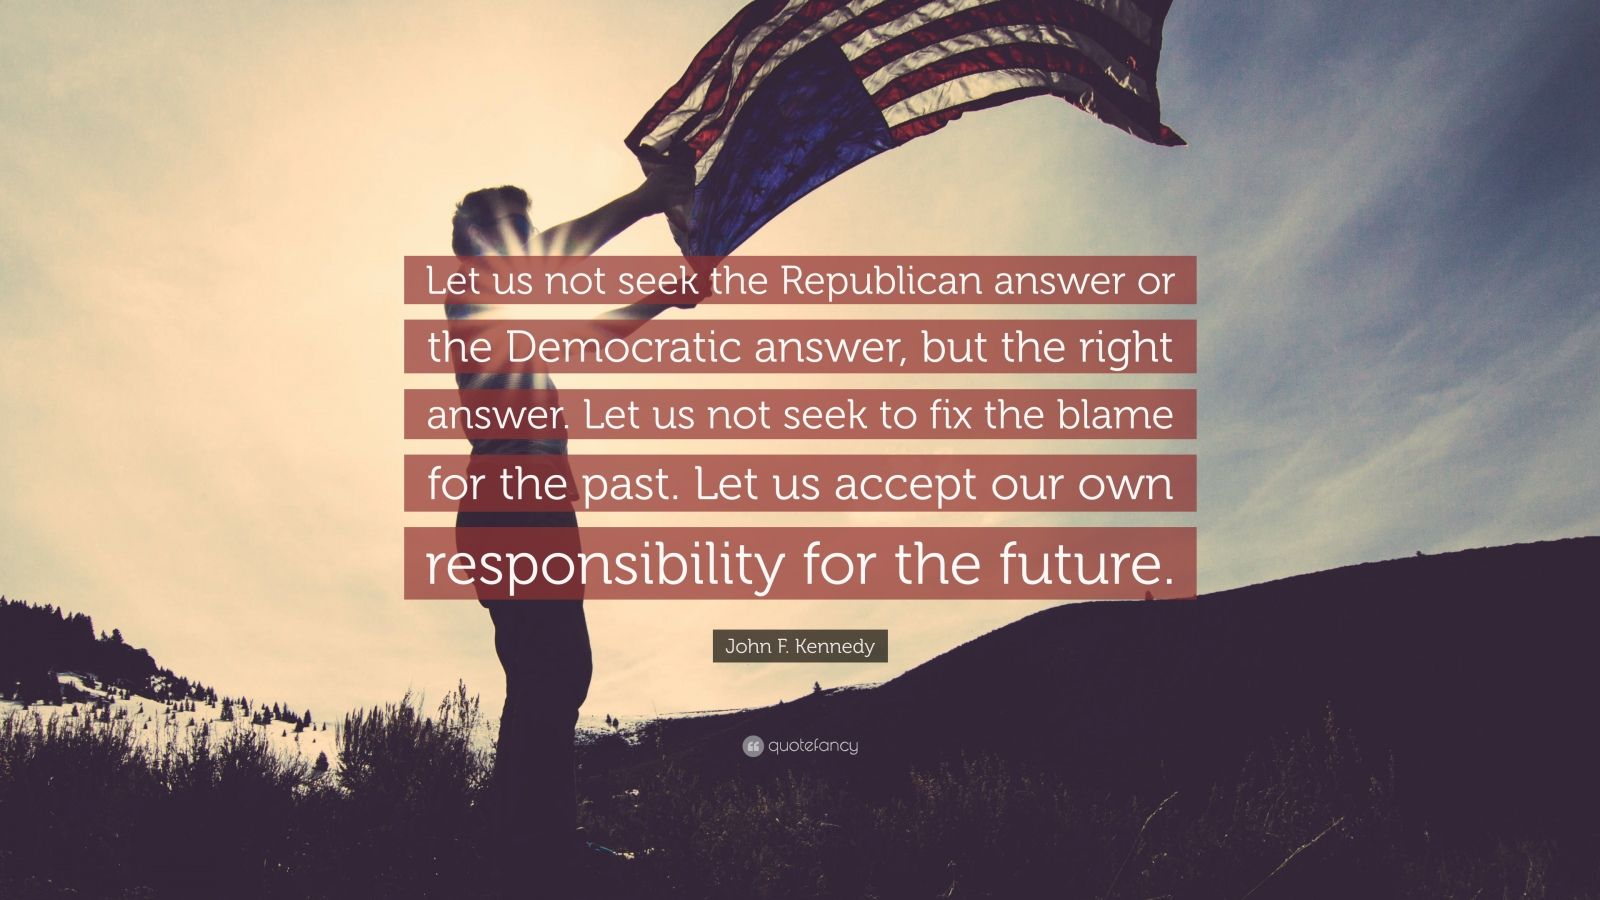 """John F. Kennedy Quote: """"Let us not seek the Republican answer or the Democratic answer, but the right answer. Let us not seek to fix the blame for the past. Let us accept our own responsibility for the future."""""""